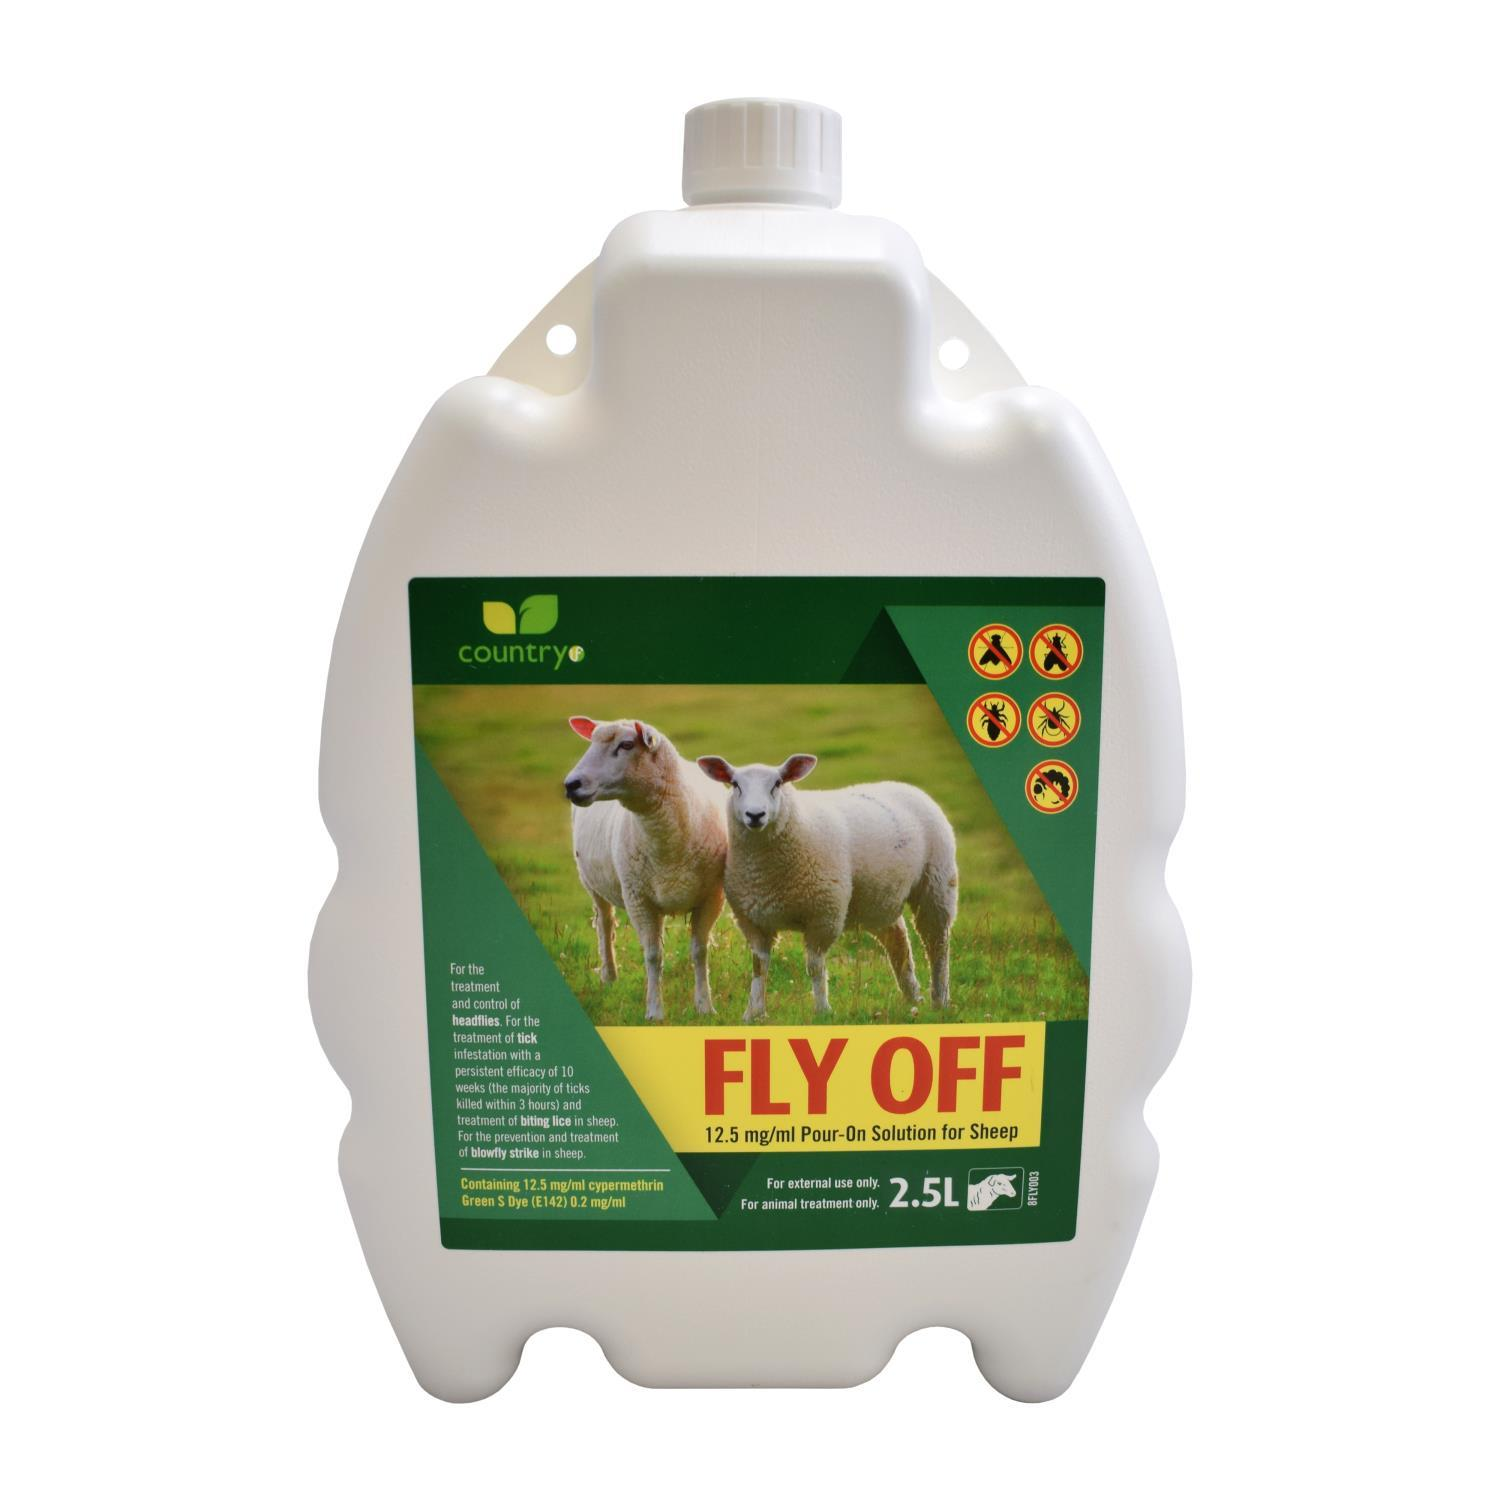 Buy Country Fly Off 2 5L from Fane Valley Stores